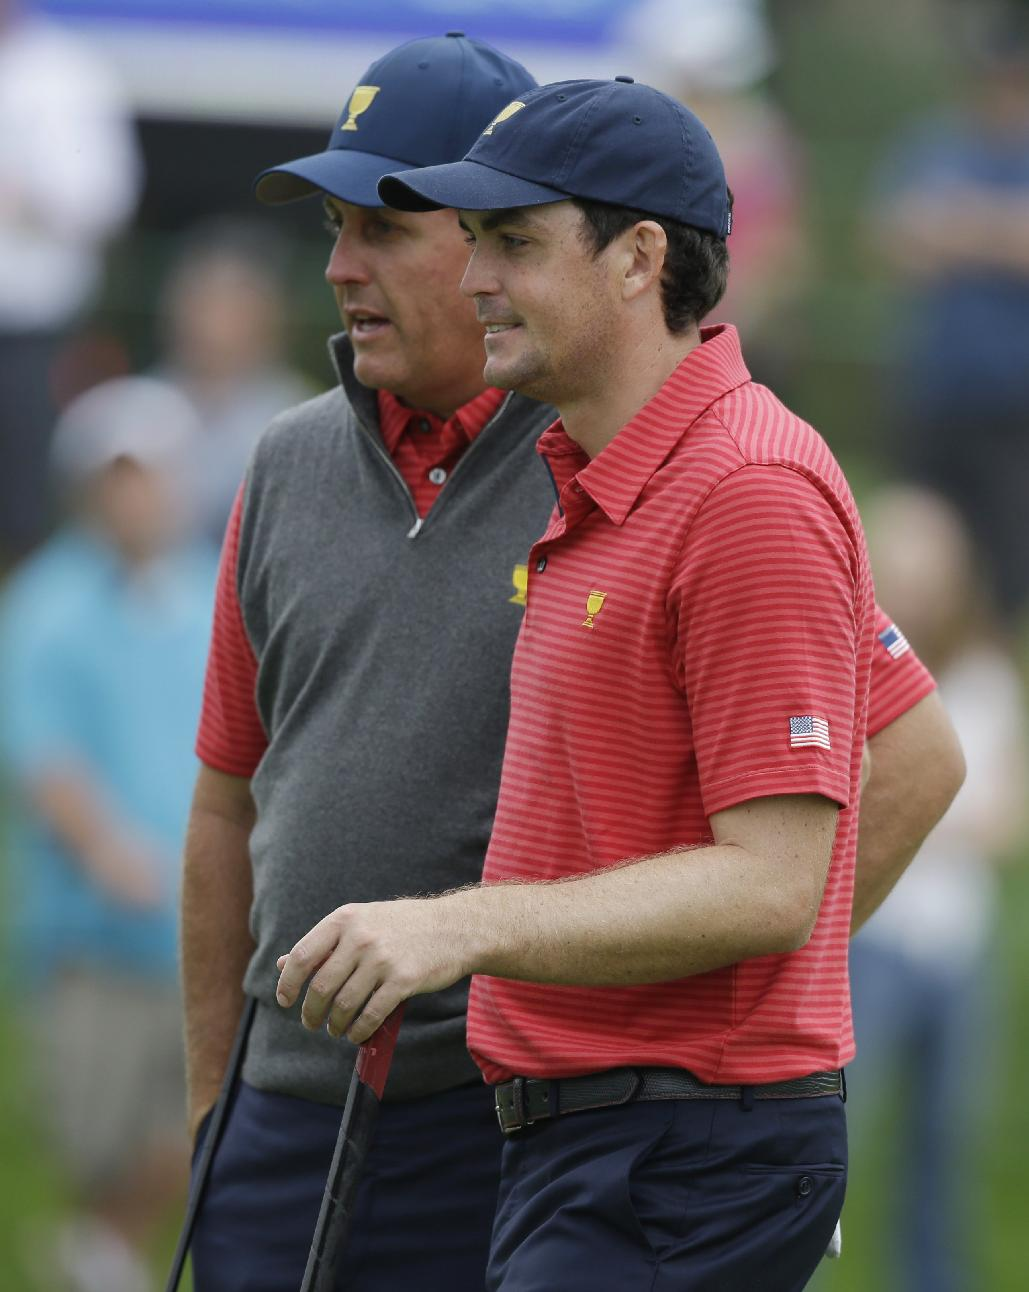 United States team player  Phil Mickelson, left, talks with teammate Keegan Bradley on the 10th green during a practice round for the Presidents Cup golf tournament at Muirfield Village Golf Club Wednesday, Oct. 2, 2013, in Dublin, Ohio